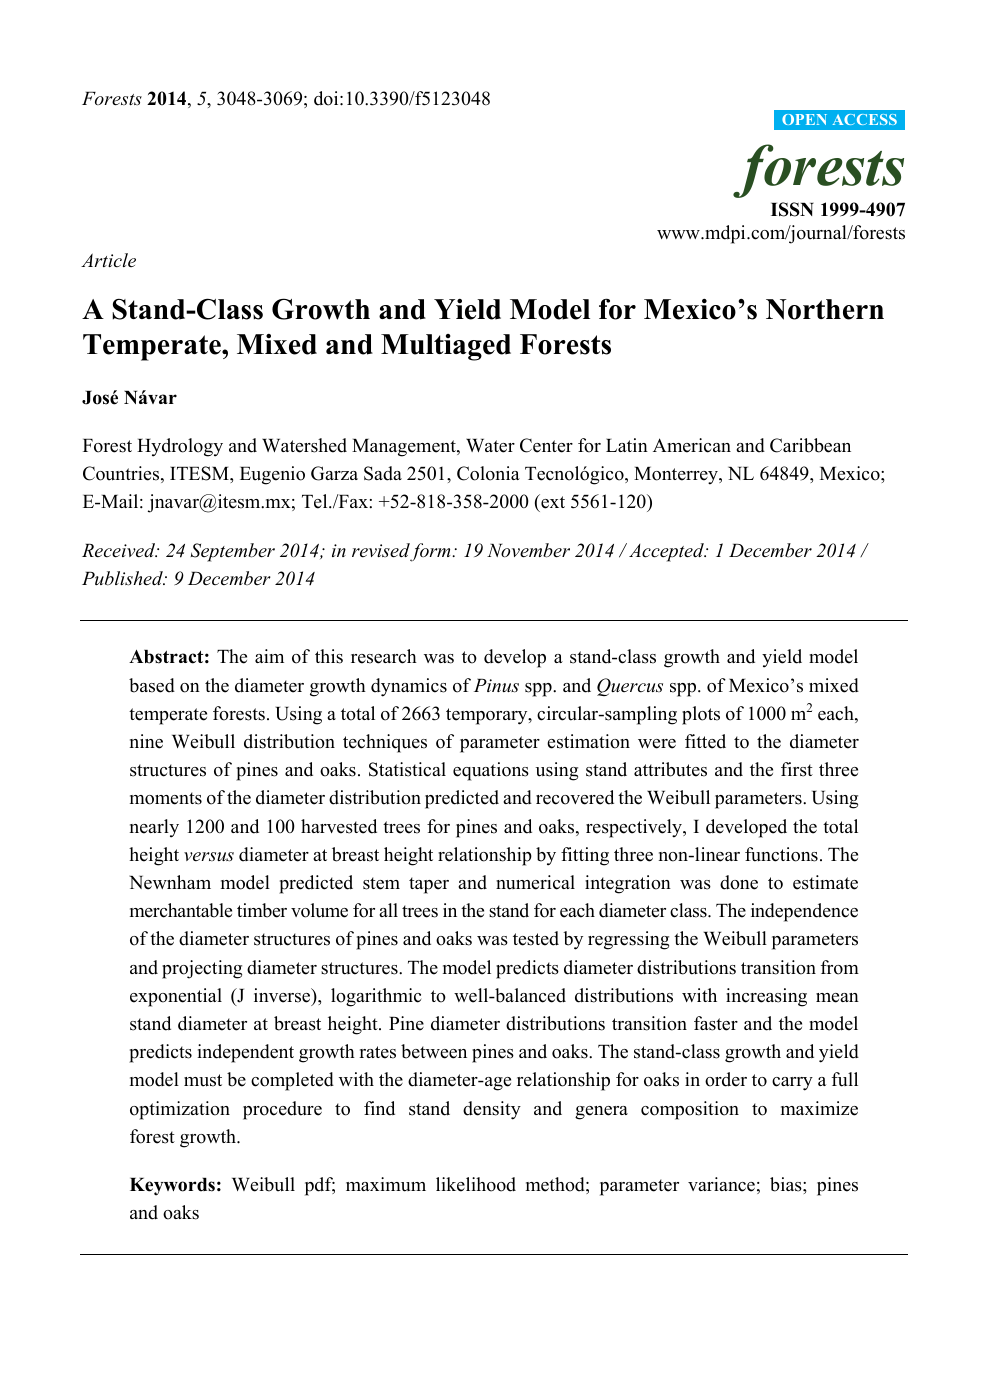 A Stand-Class Growth and Yield Model for Mexico's Northern